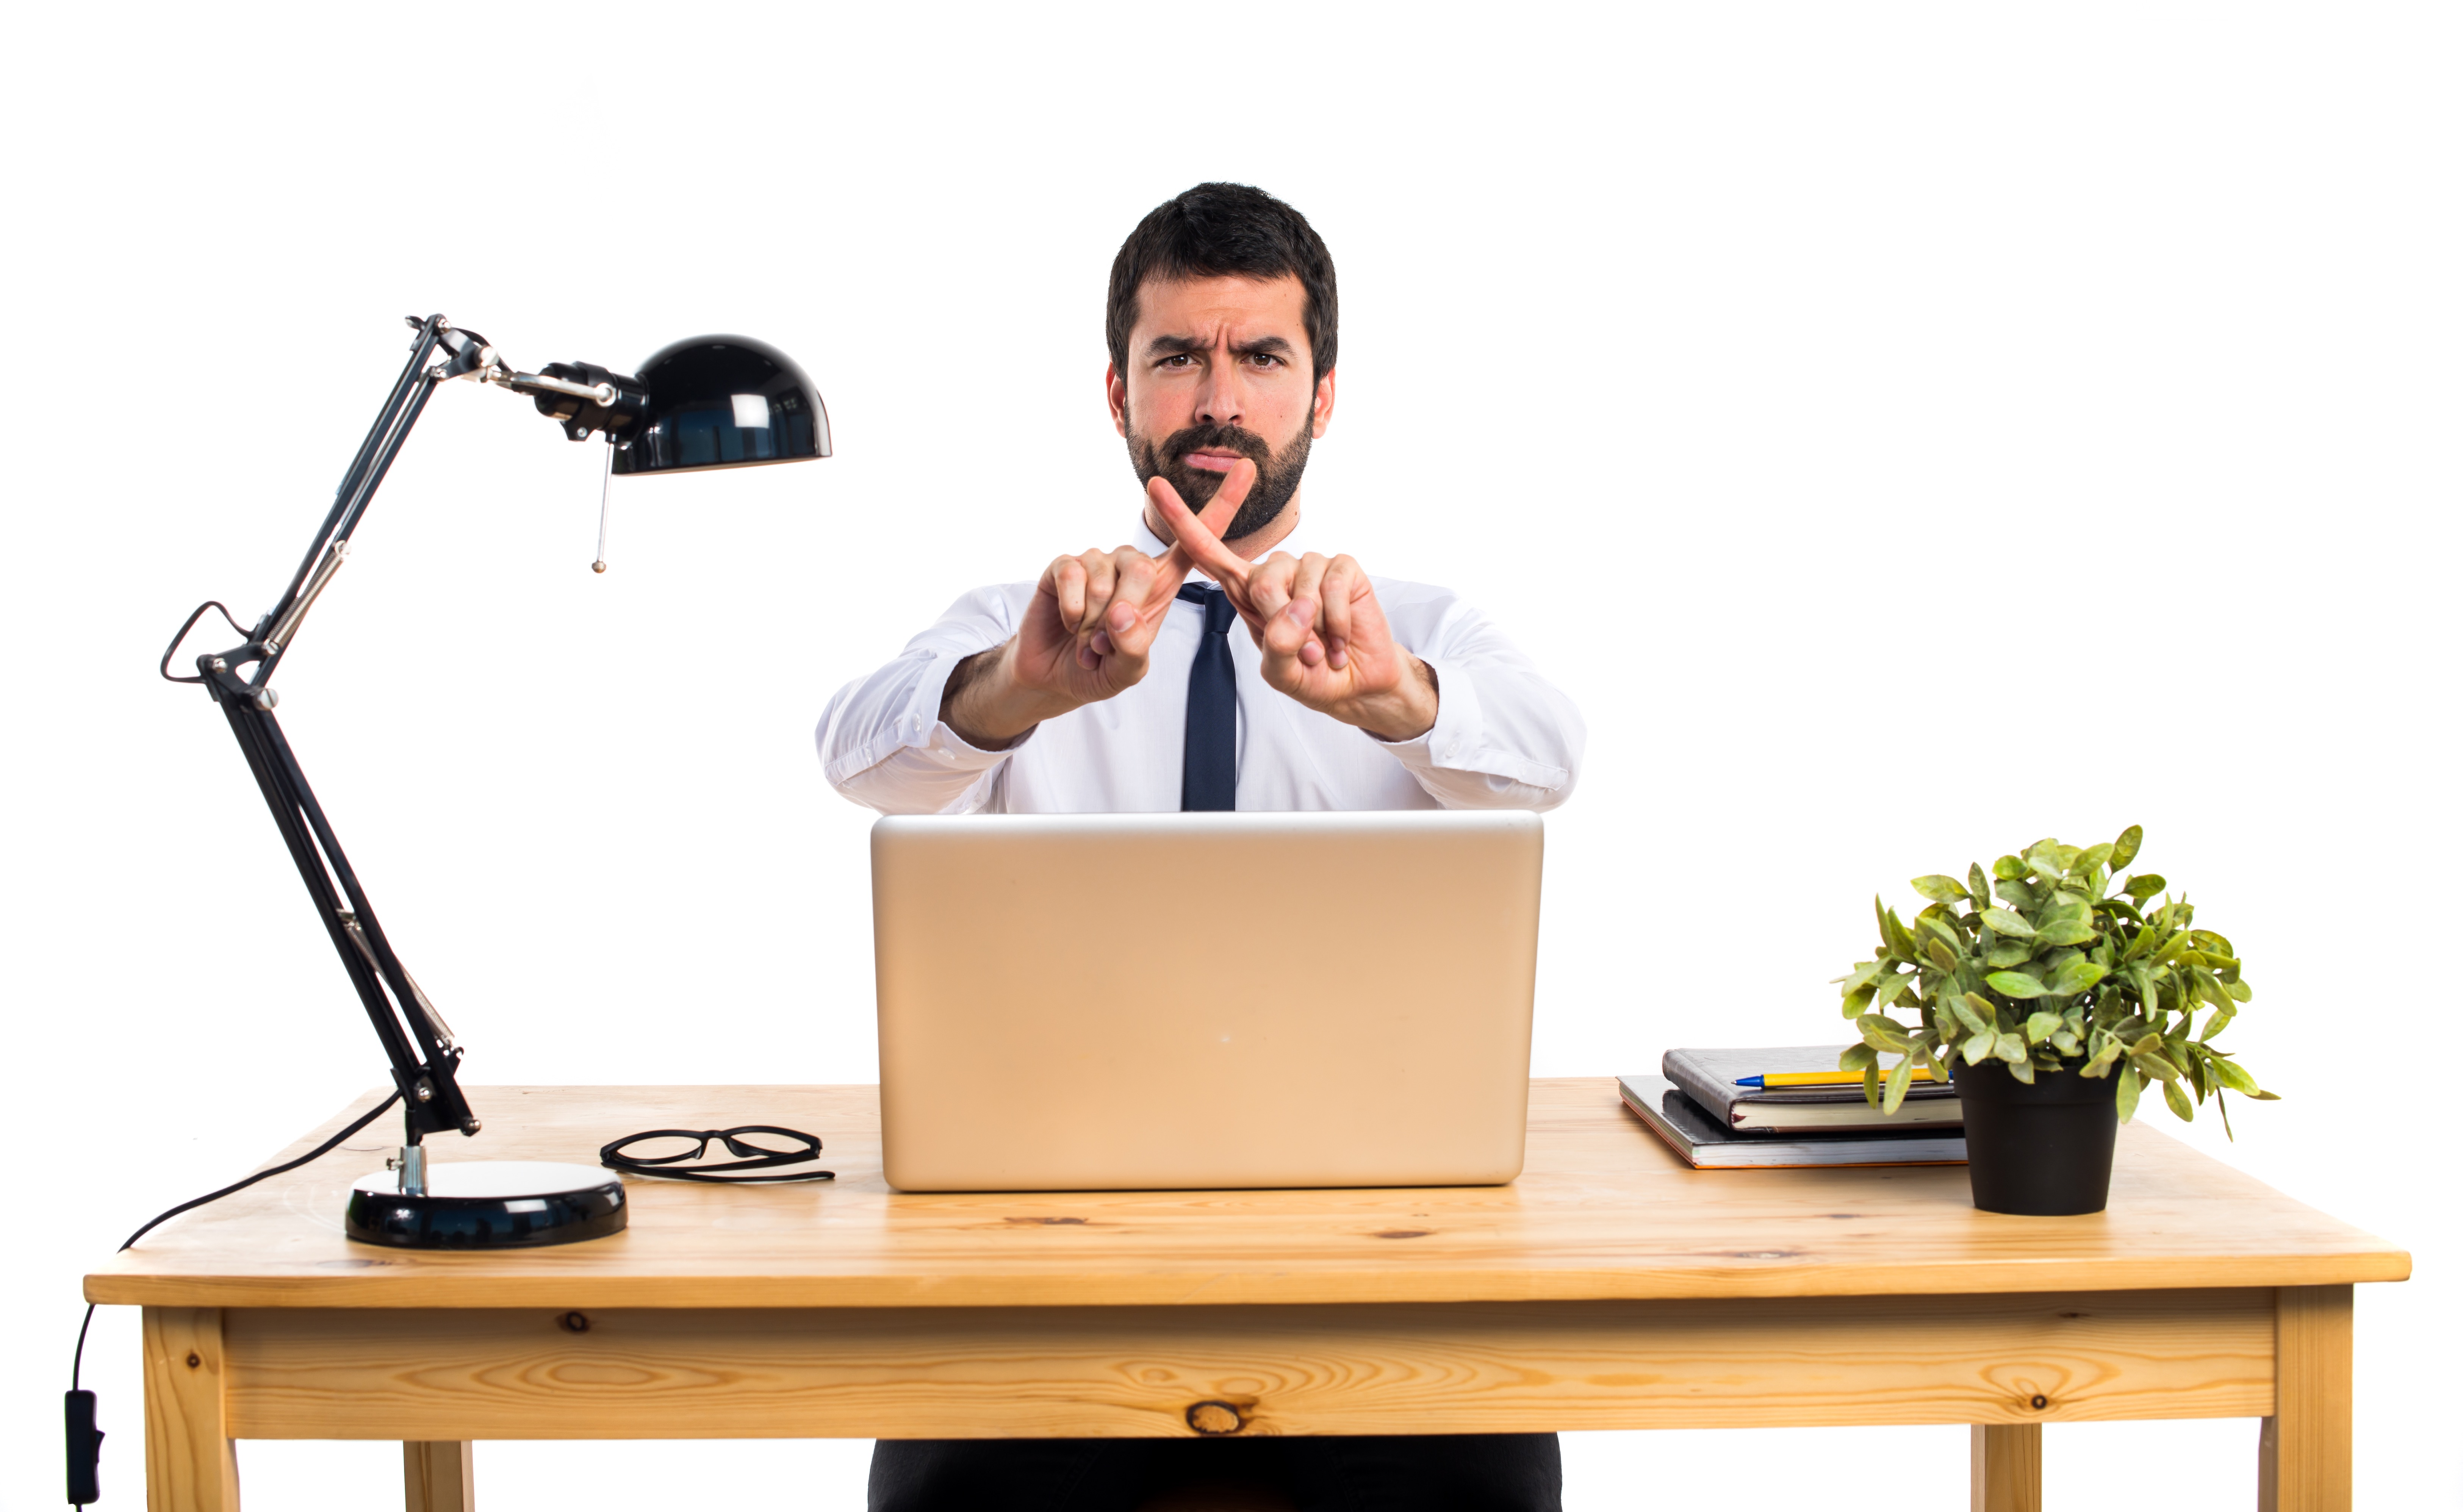 businessman-in-his-office-doing-no-gesture